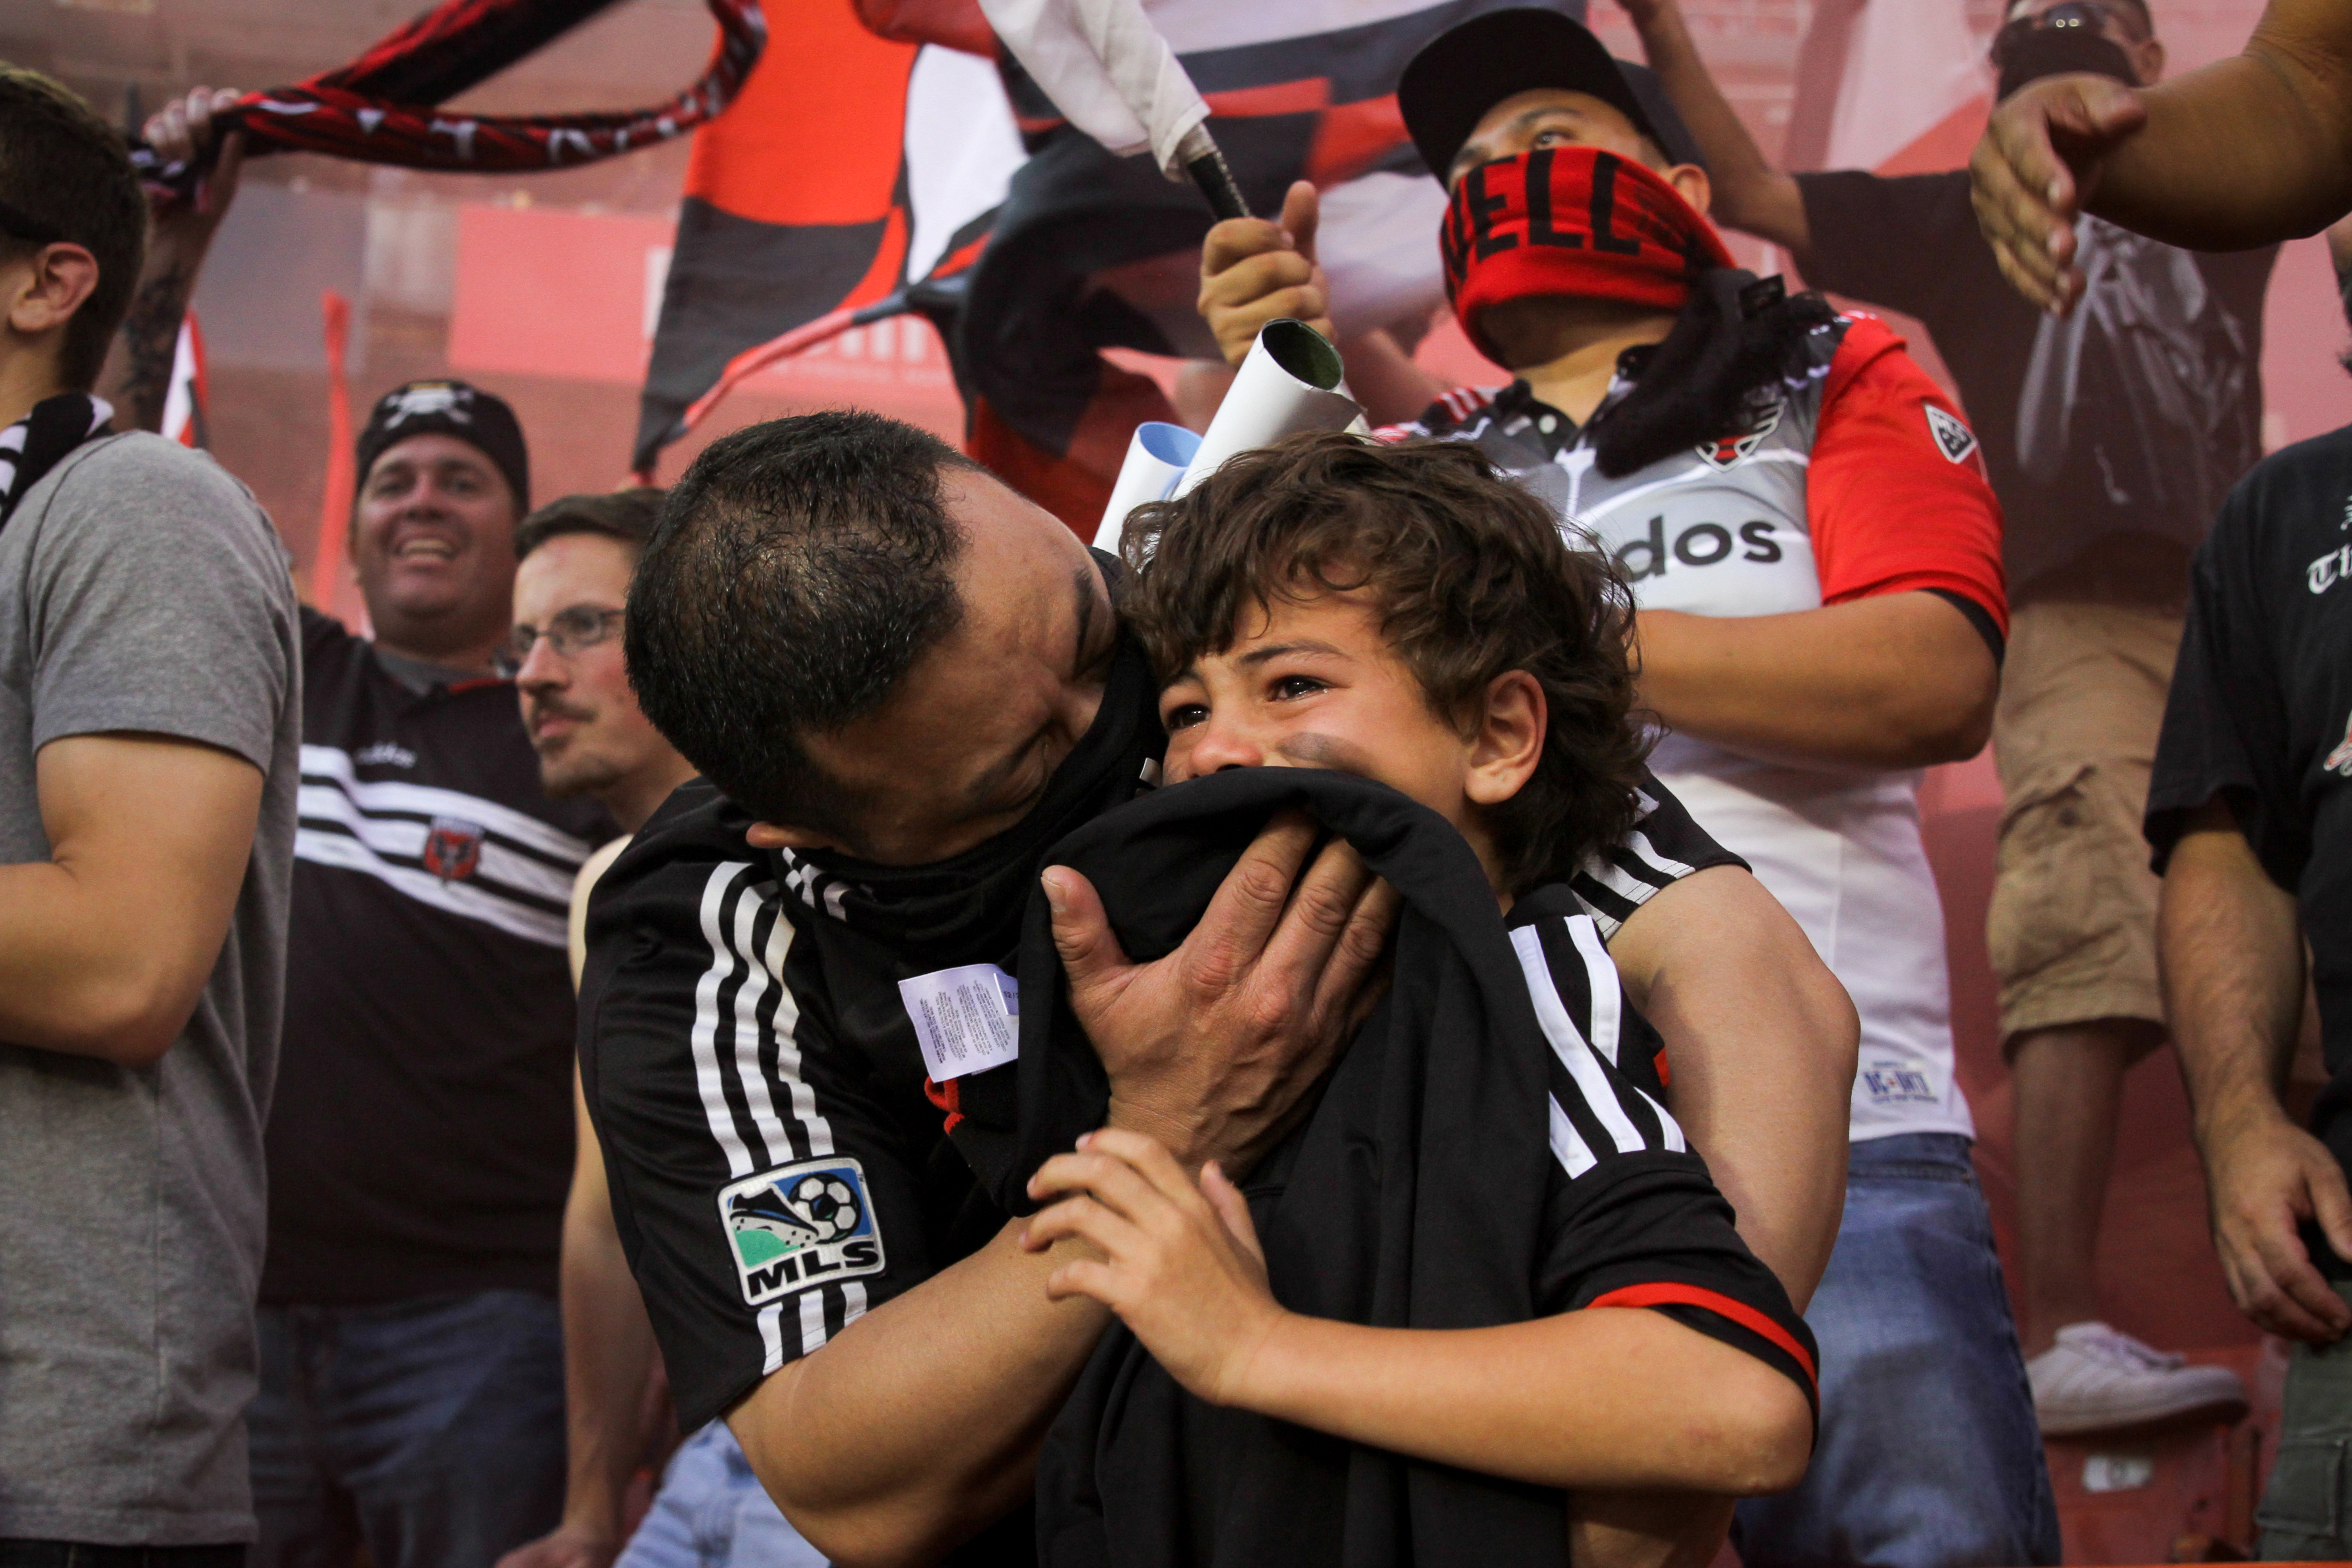 November, 2017. A man protects his son's face during DC United's final game at RFK Stadium.{&amp;nbsp;} (Amanda Andrade-Rhoades/DC Refined)<p></p>